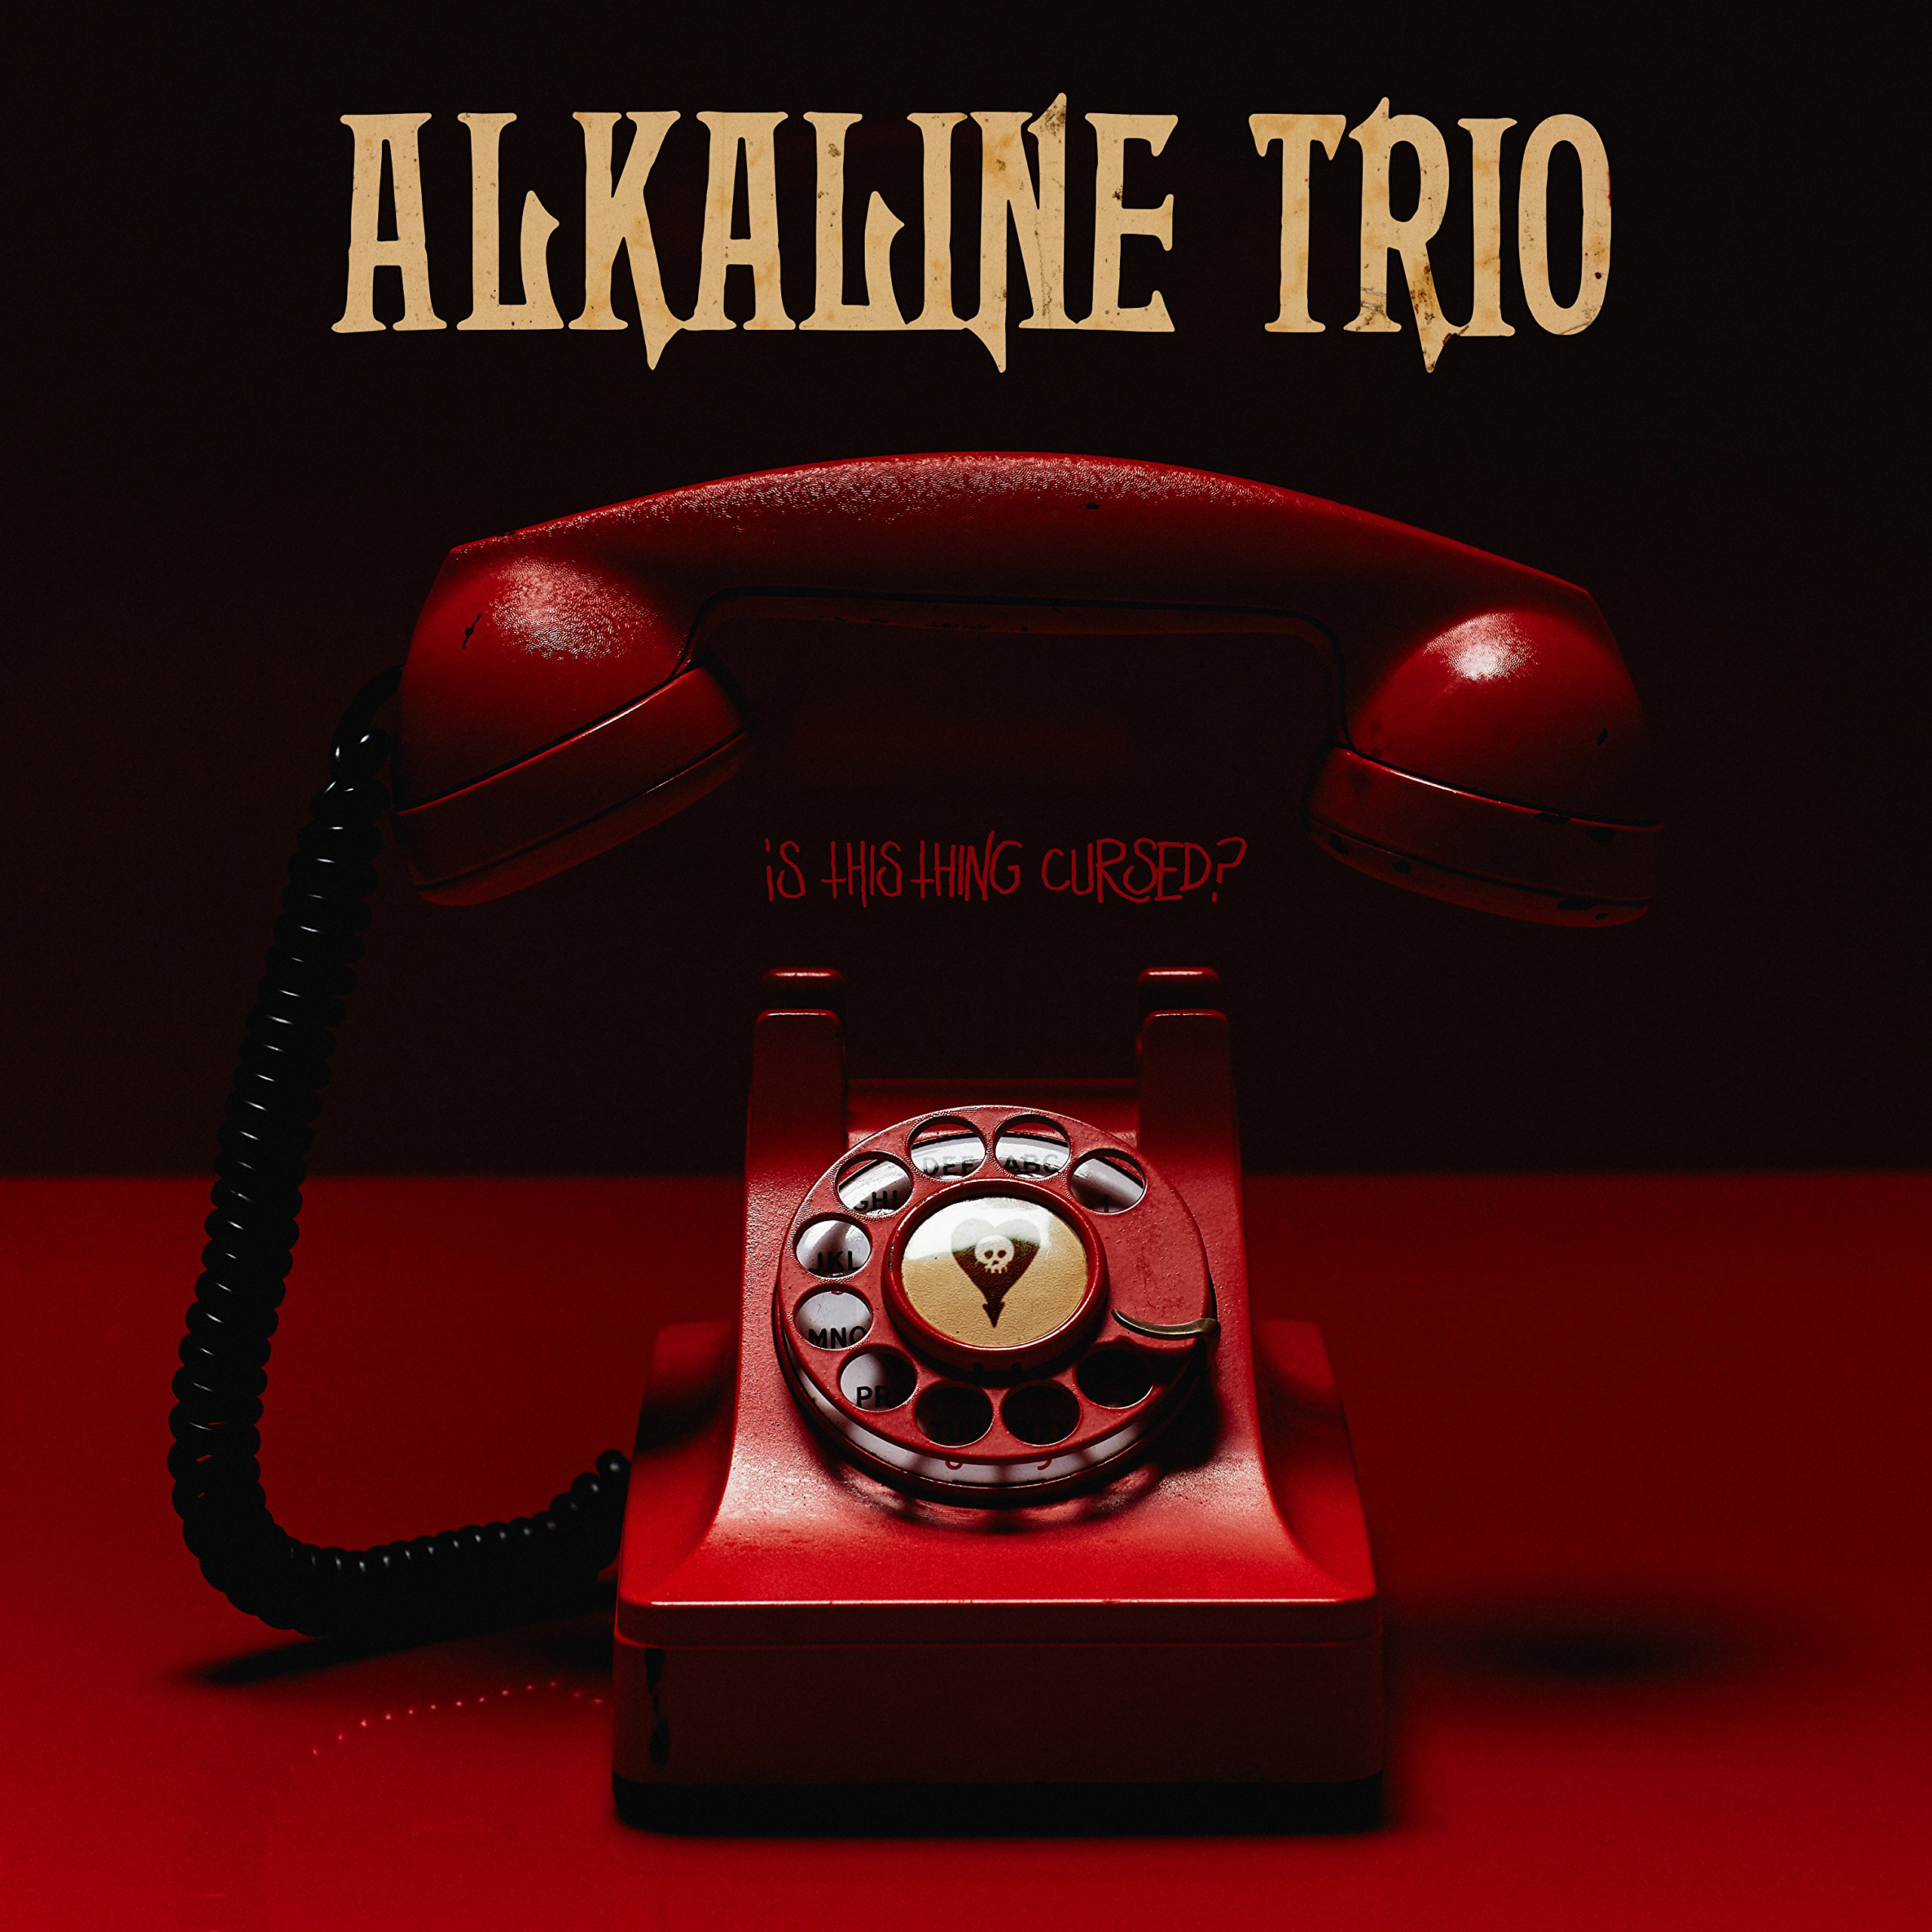 CD : Alkaline Trio - Is This Thing Cursed (CD)